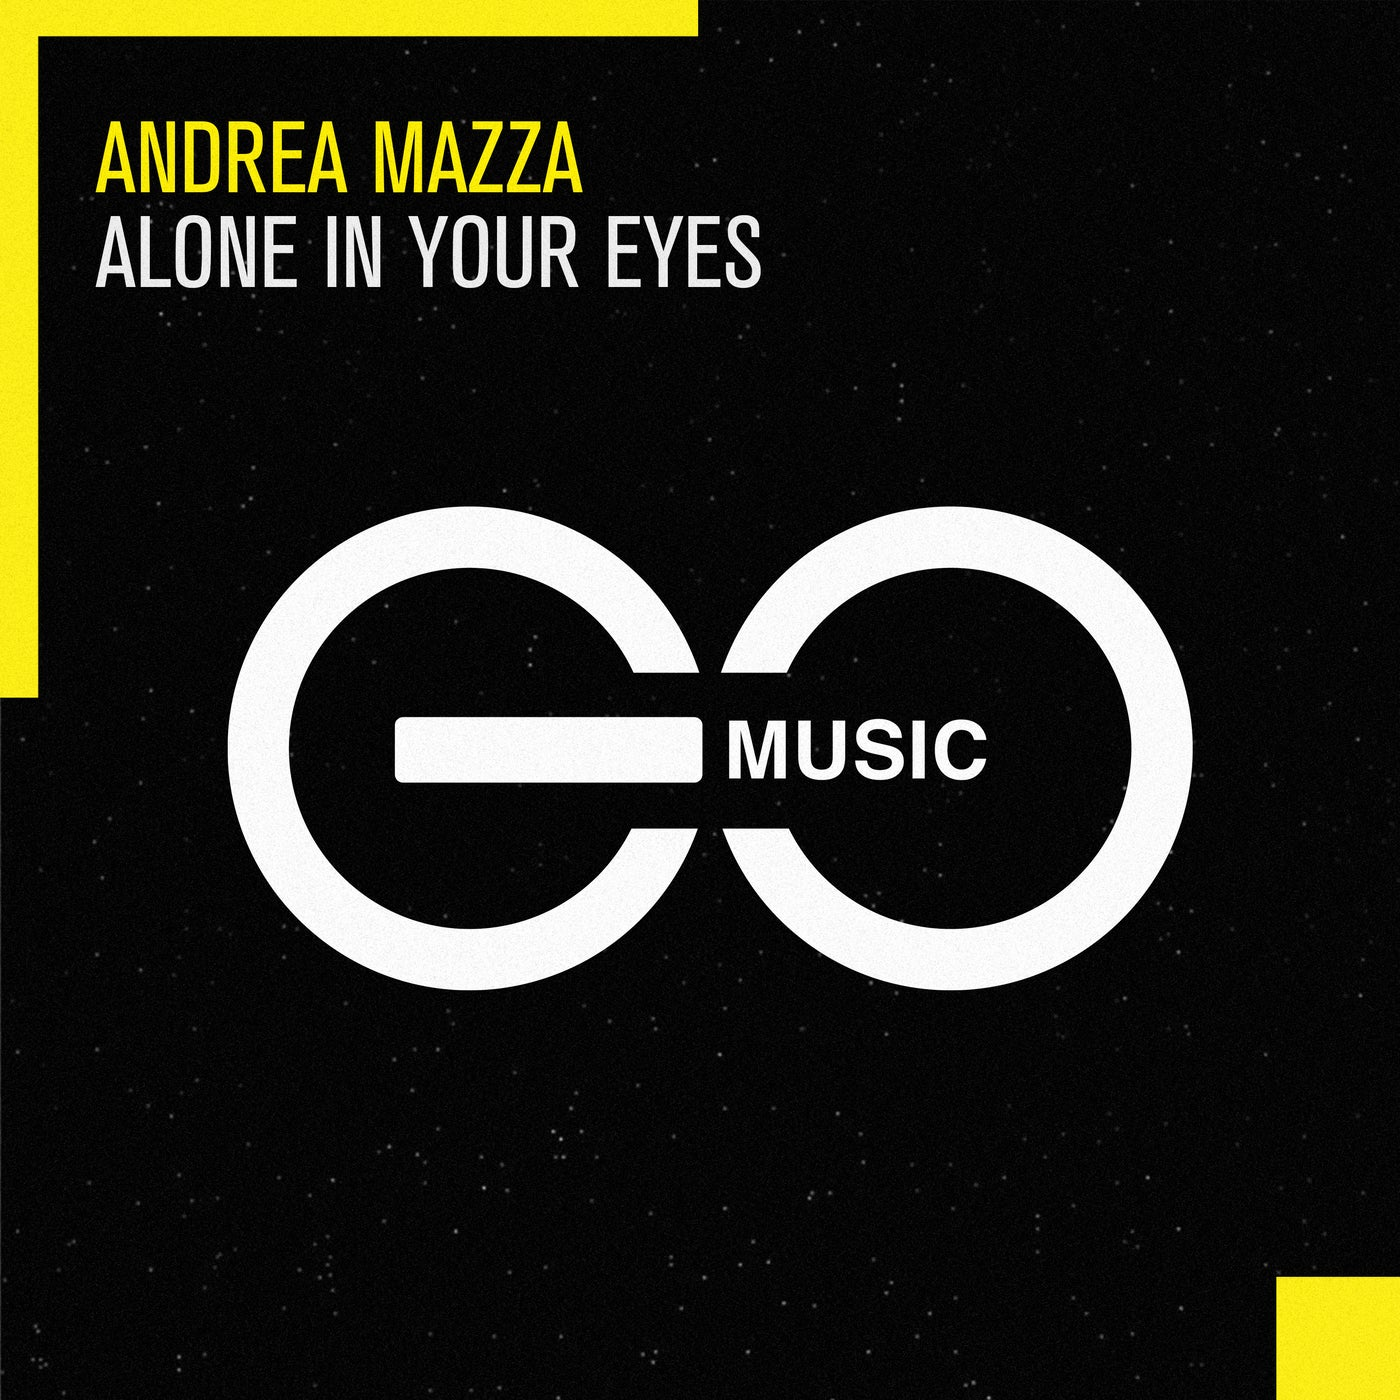 Alone in Your Eyes (Extended Mix)